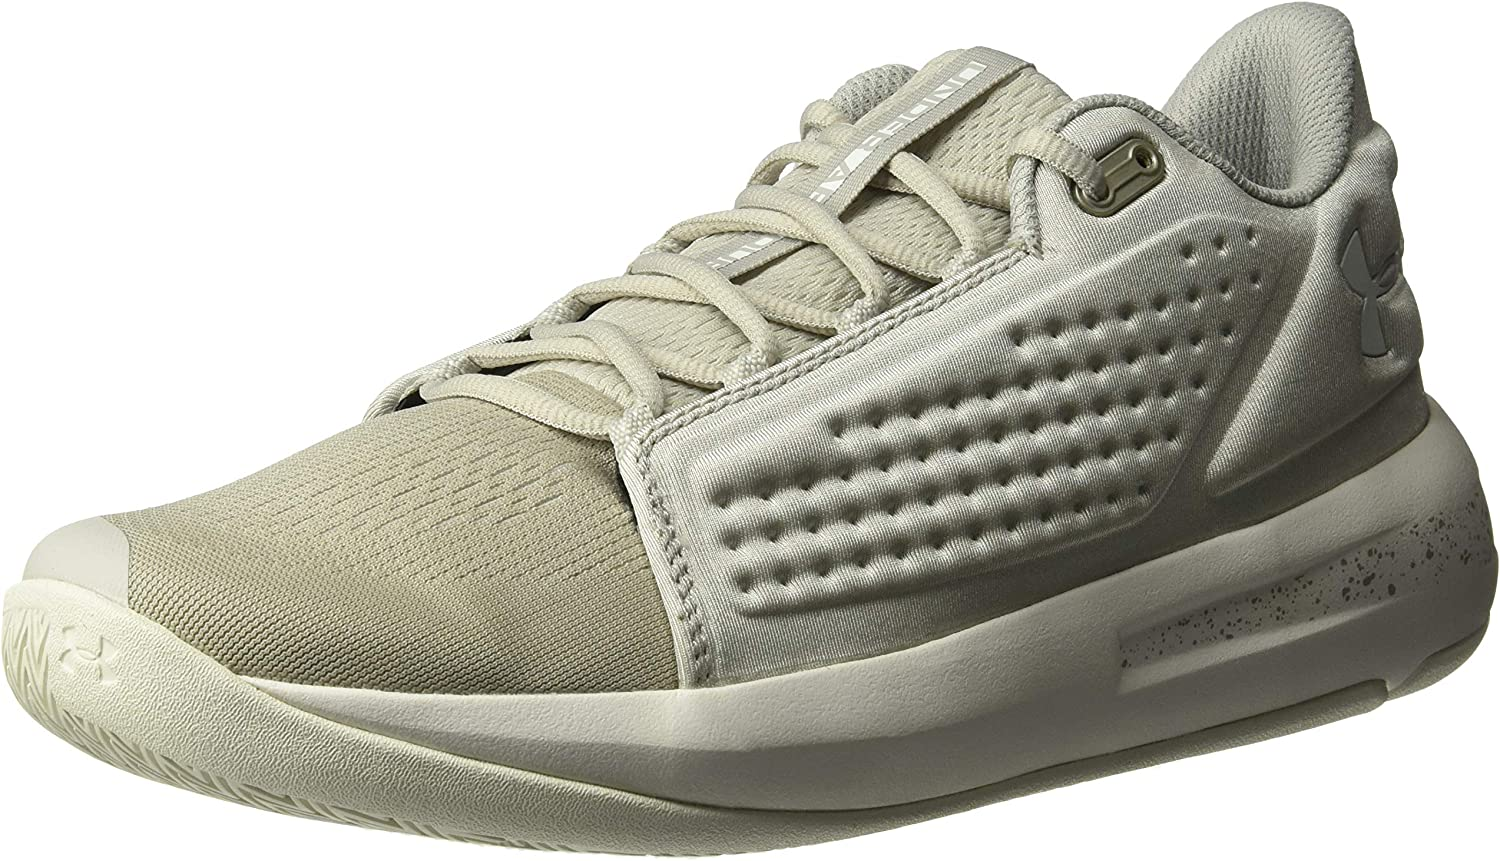 Torch Low Basketball Shoe